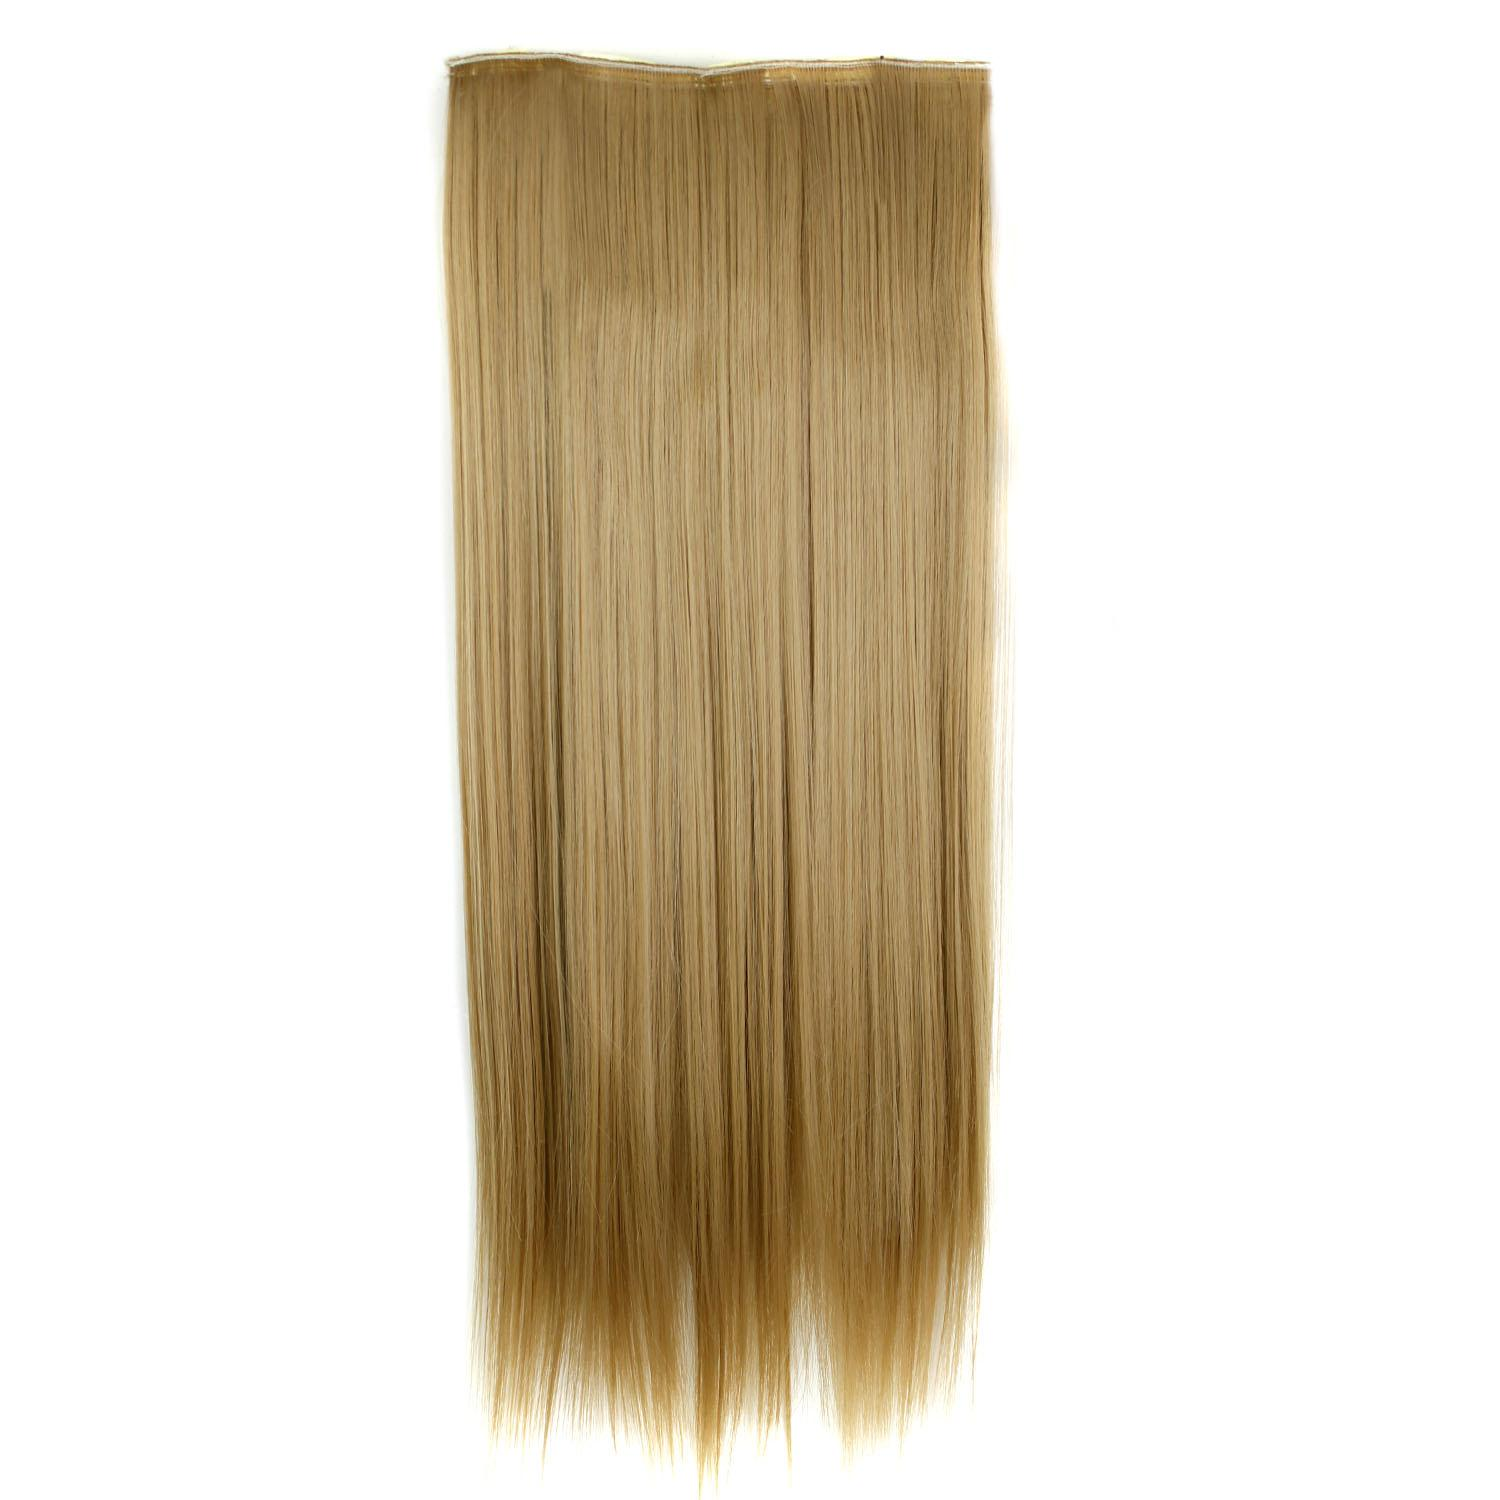 Fake hair extension straight long 24 5 clip in hair extensions see larger image pmusecretfo Choice Image